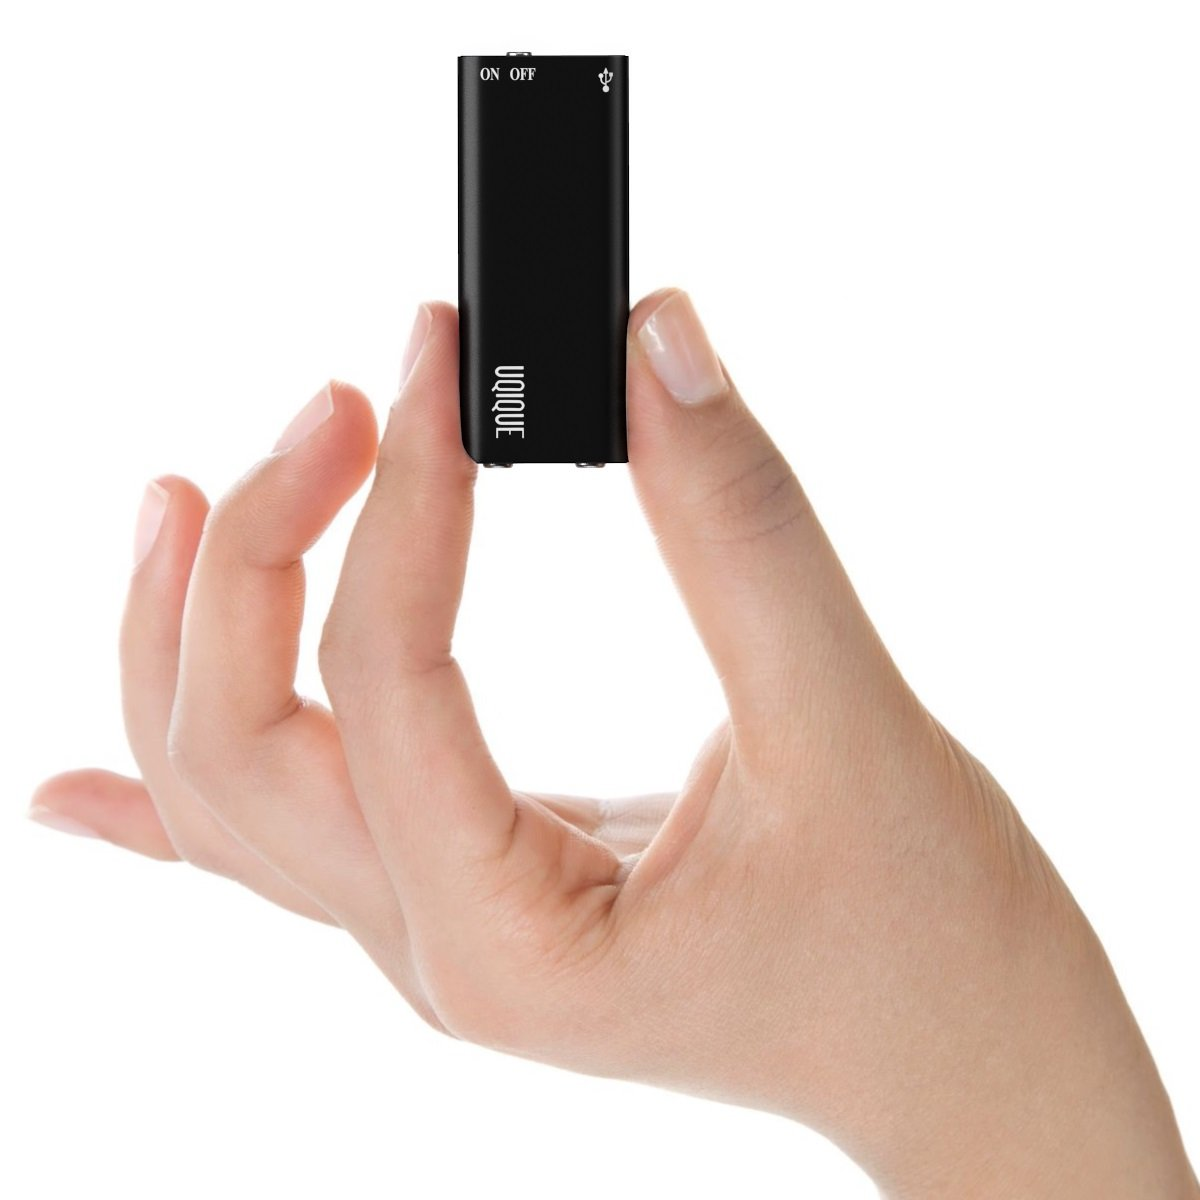 Uqique Mini USB Voice Recorder with Playback, Black